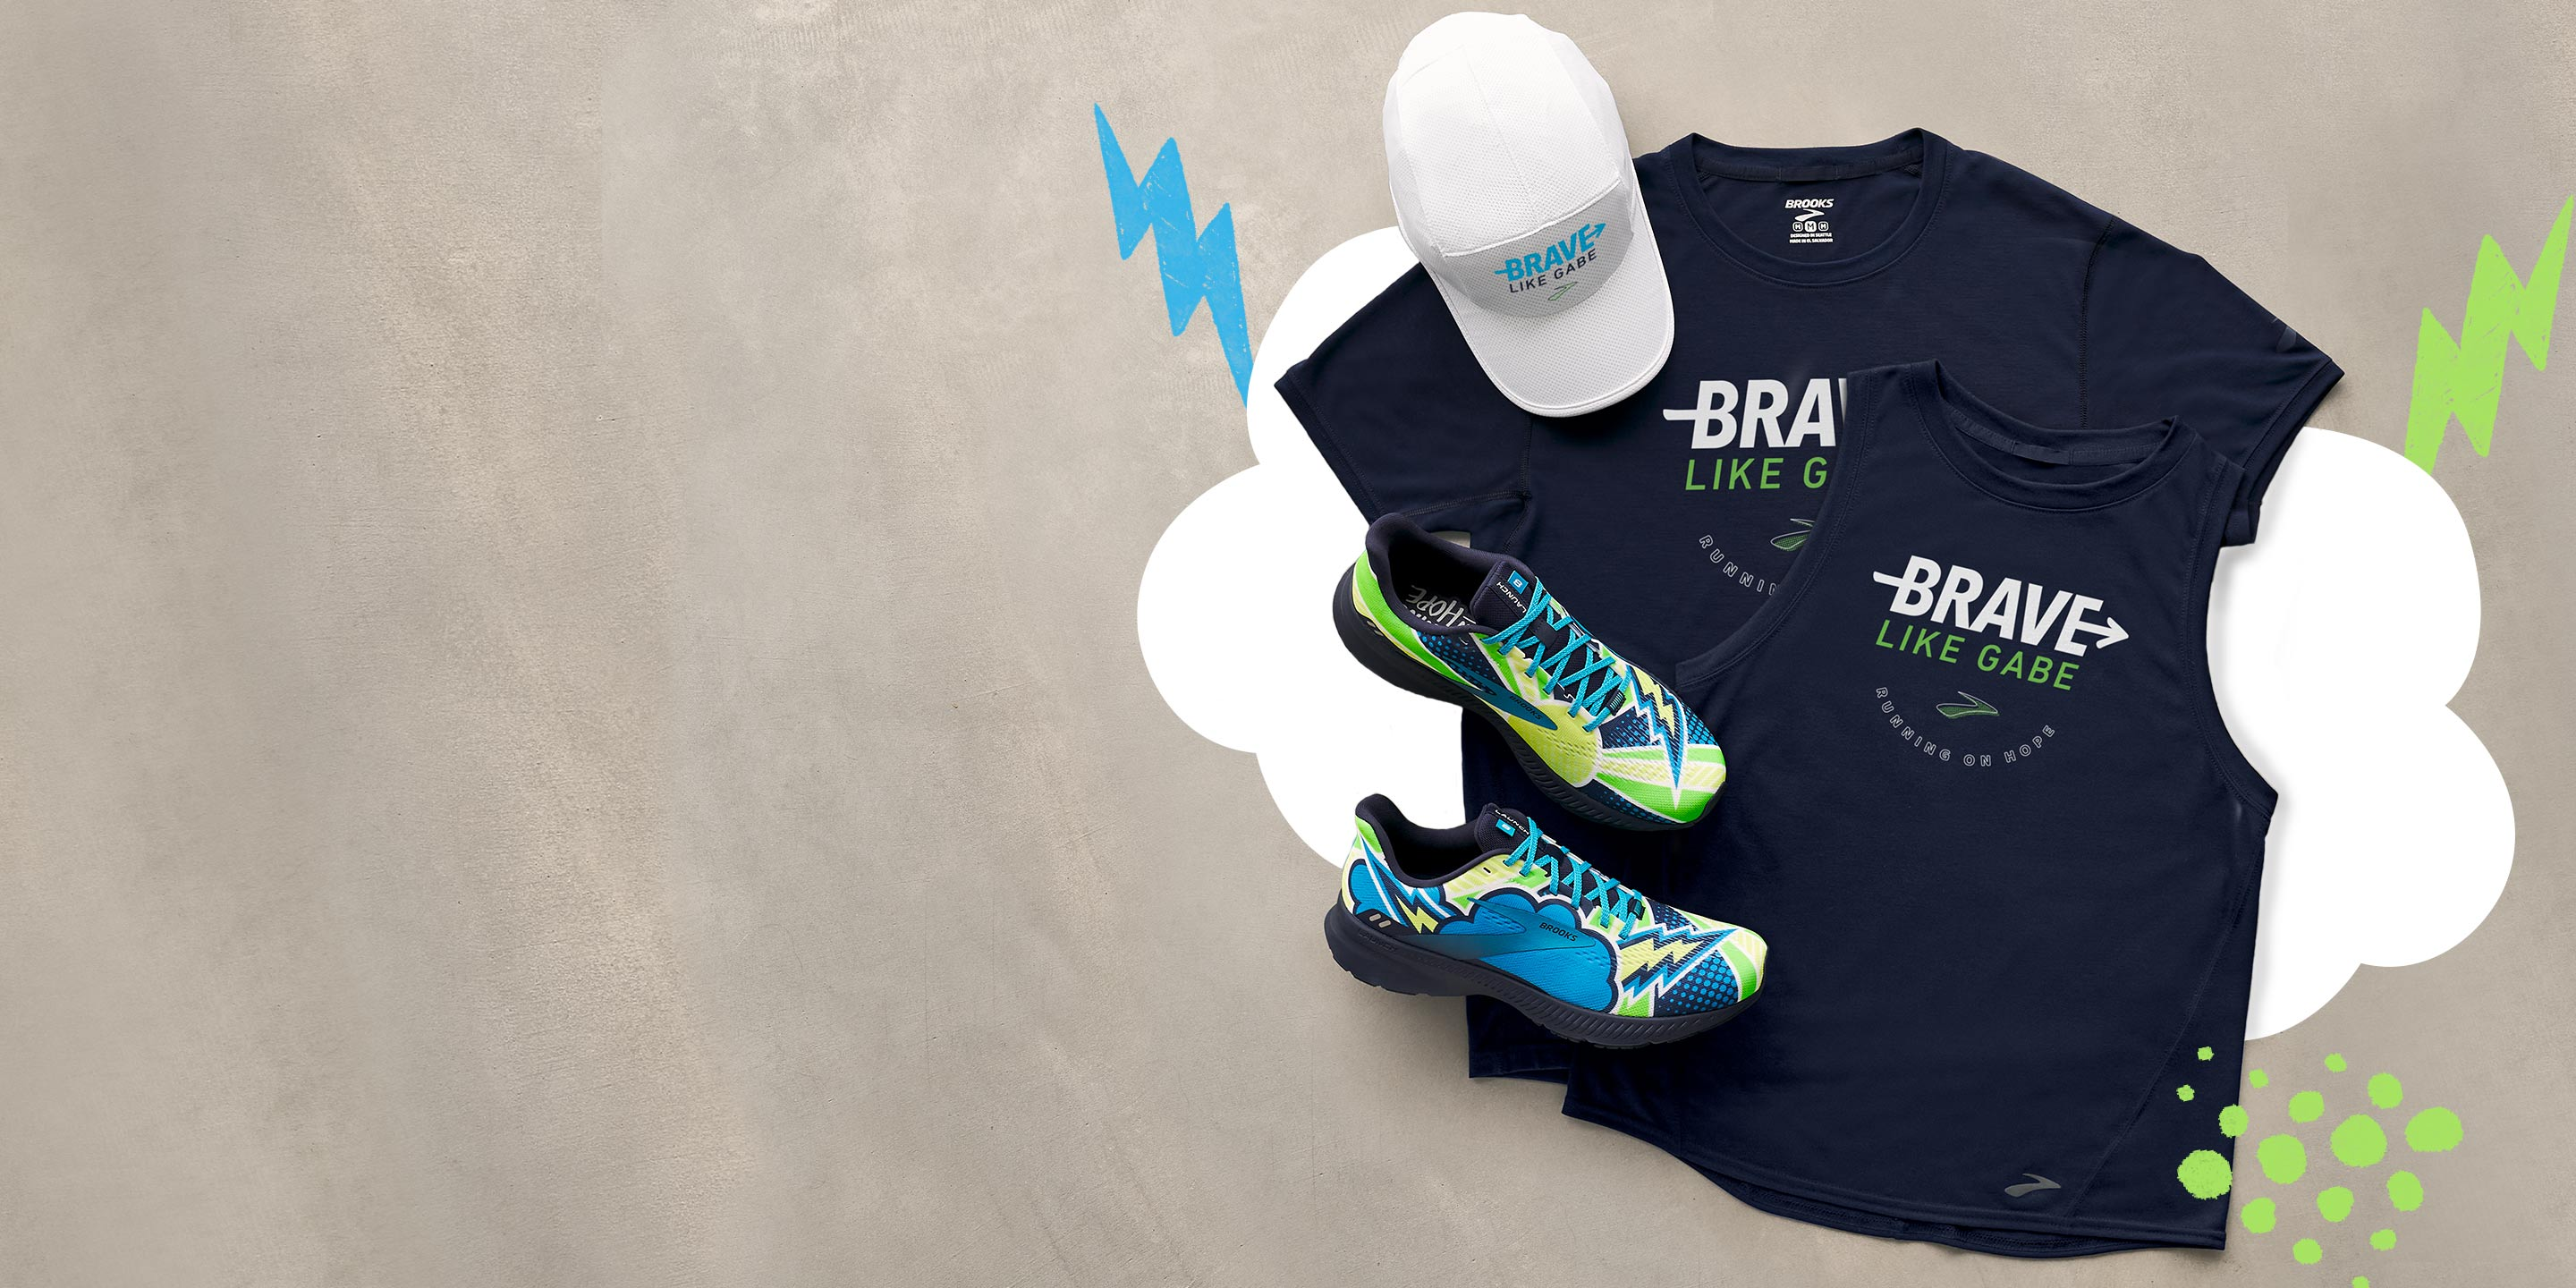 Brave like Gabe collection shirt, tank, shoes, and hat.